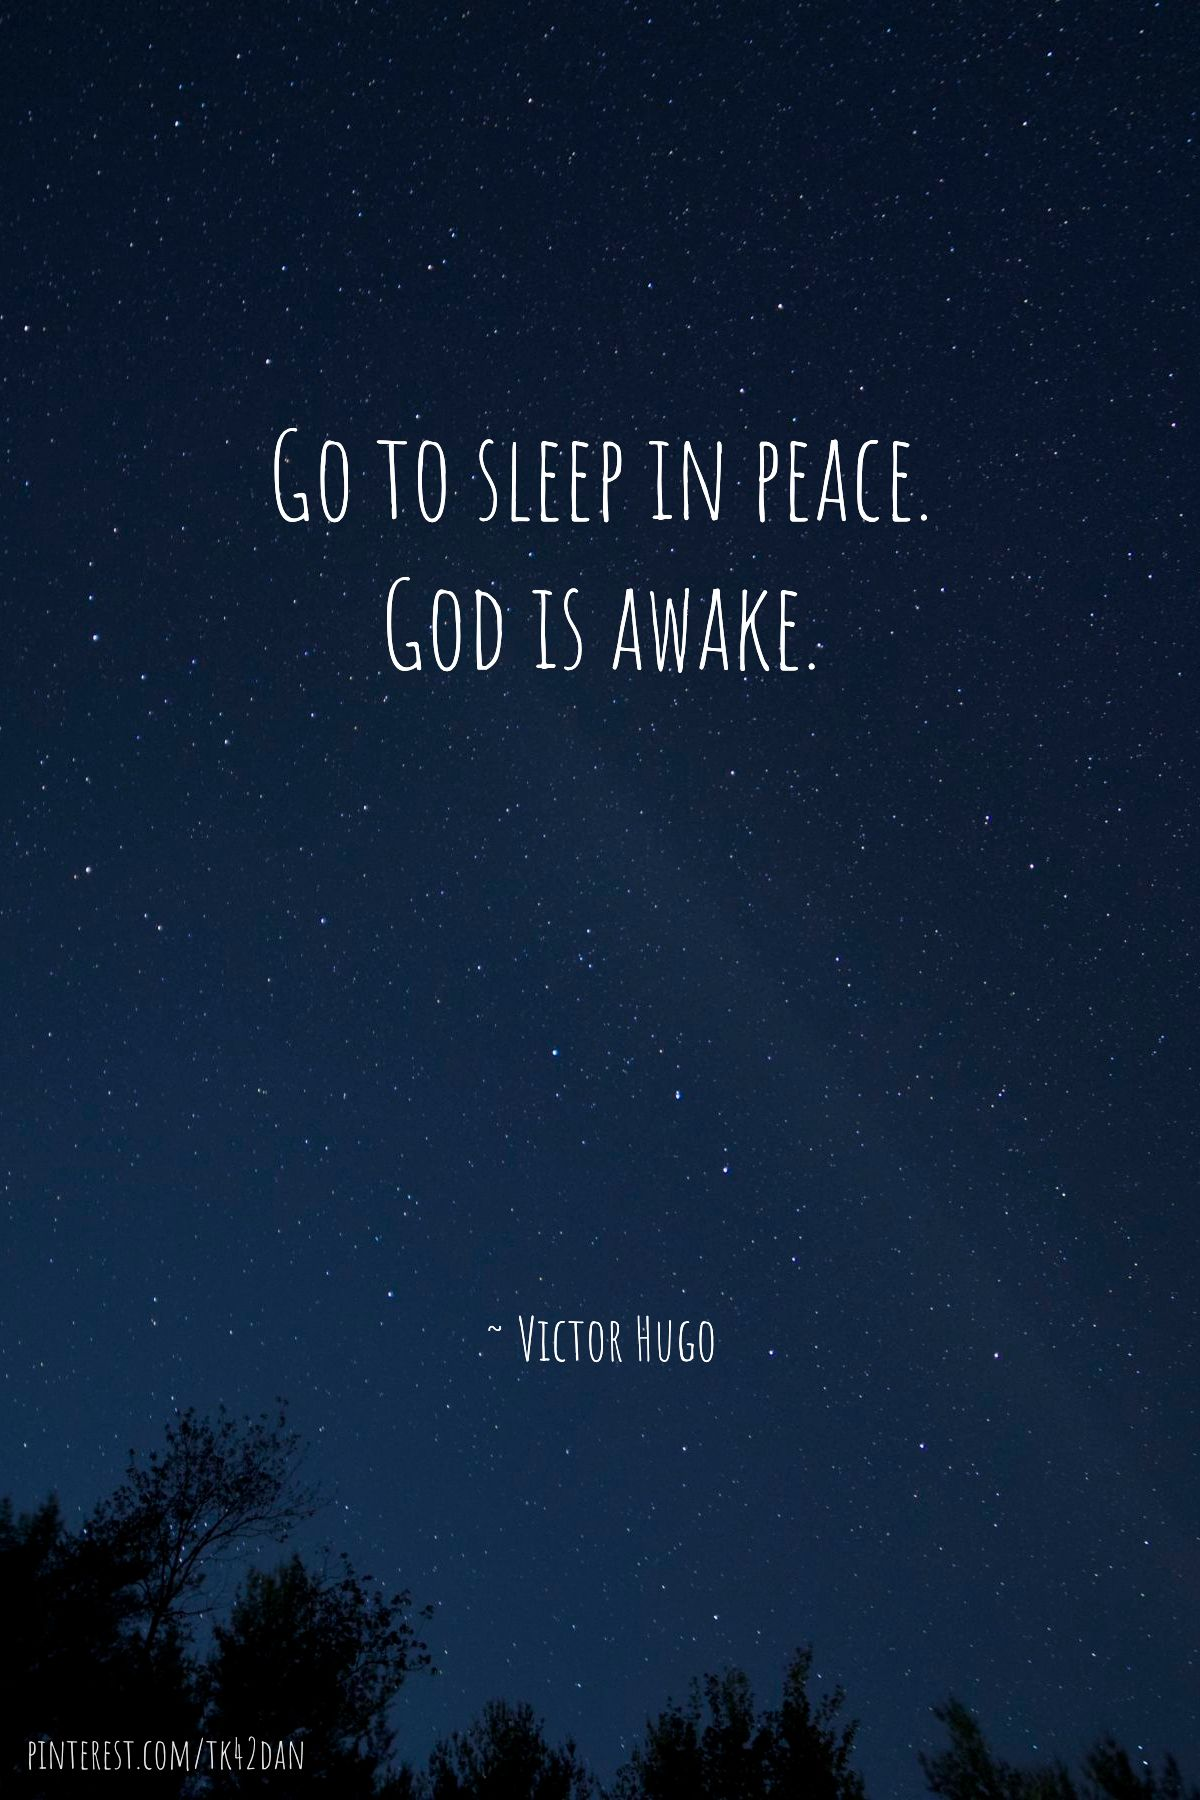 A perfect part of an evening meditation and prayer before ...